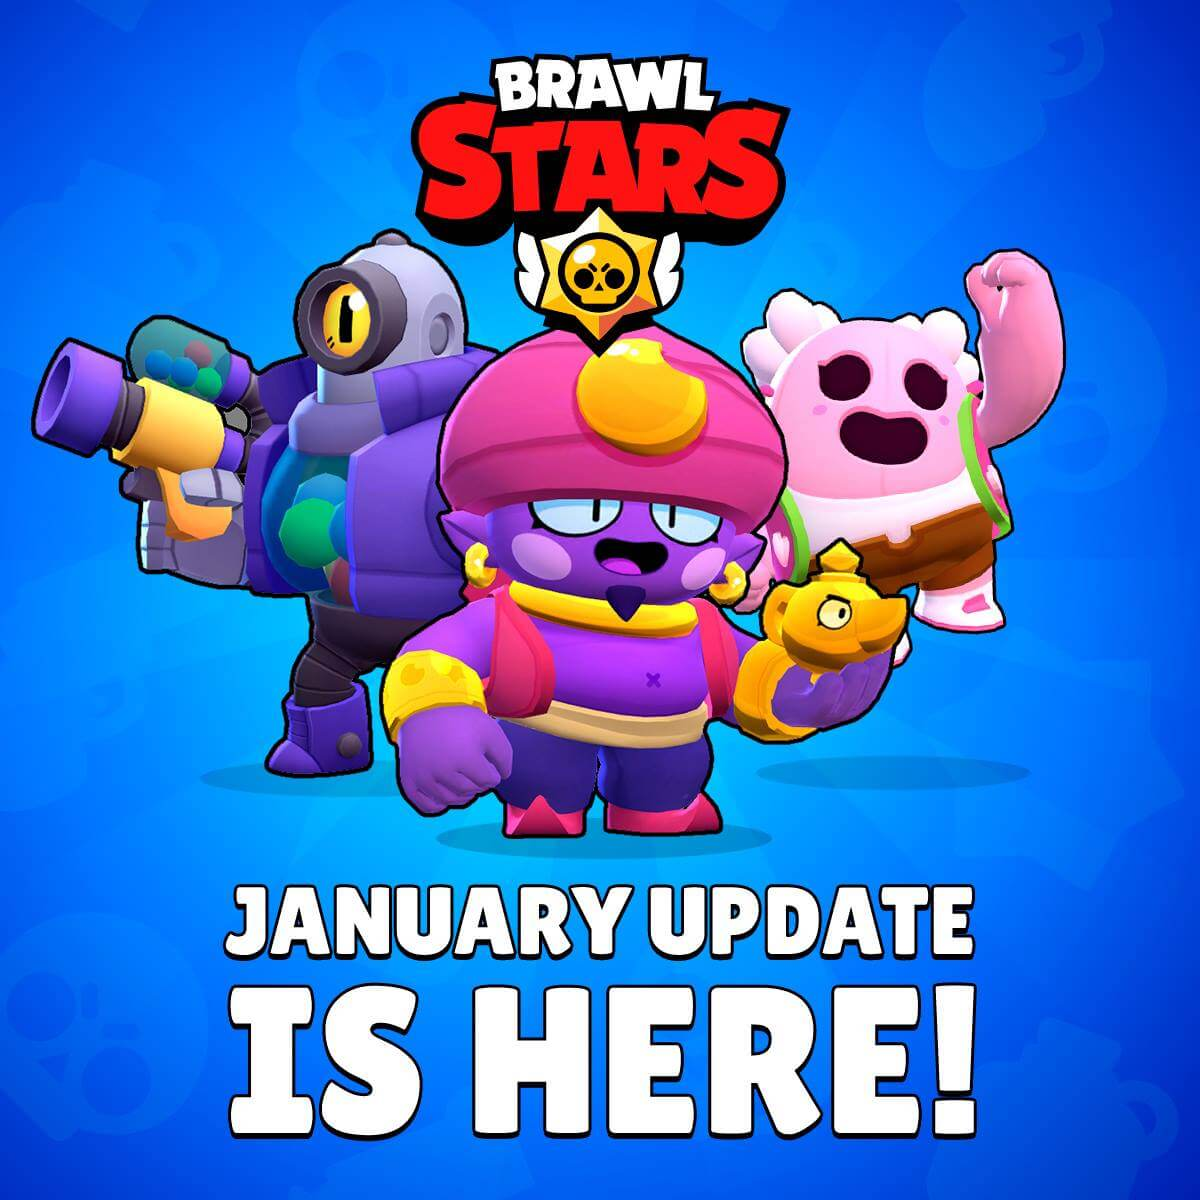 brawl stars jan update